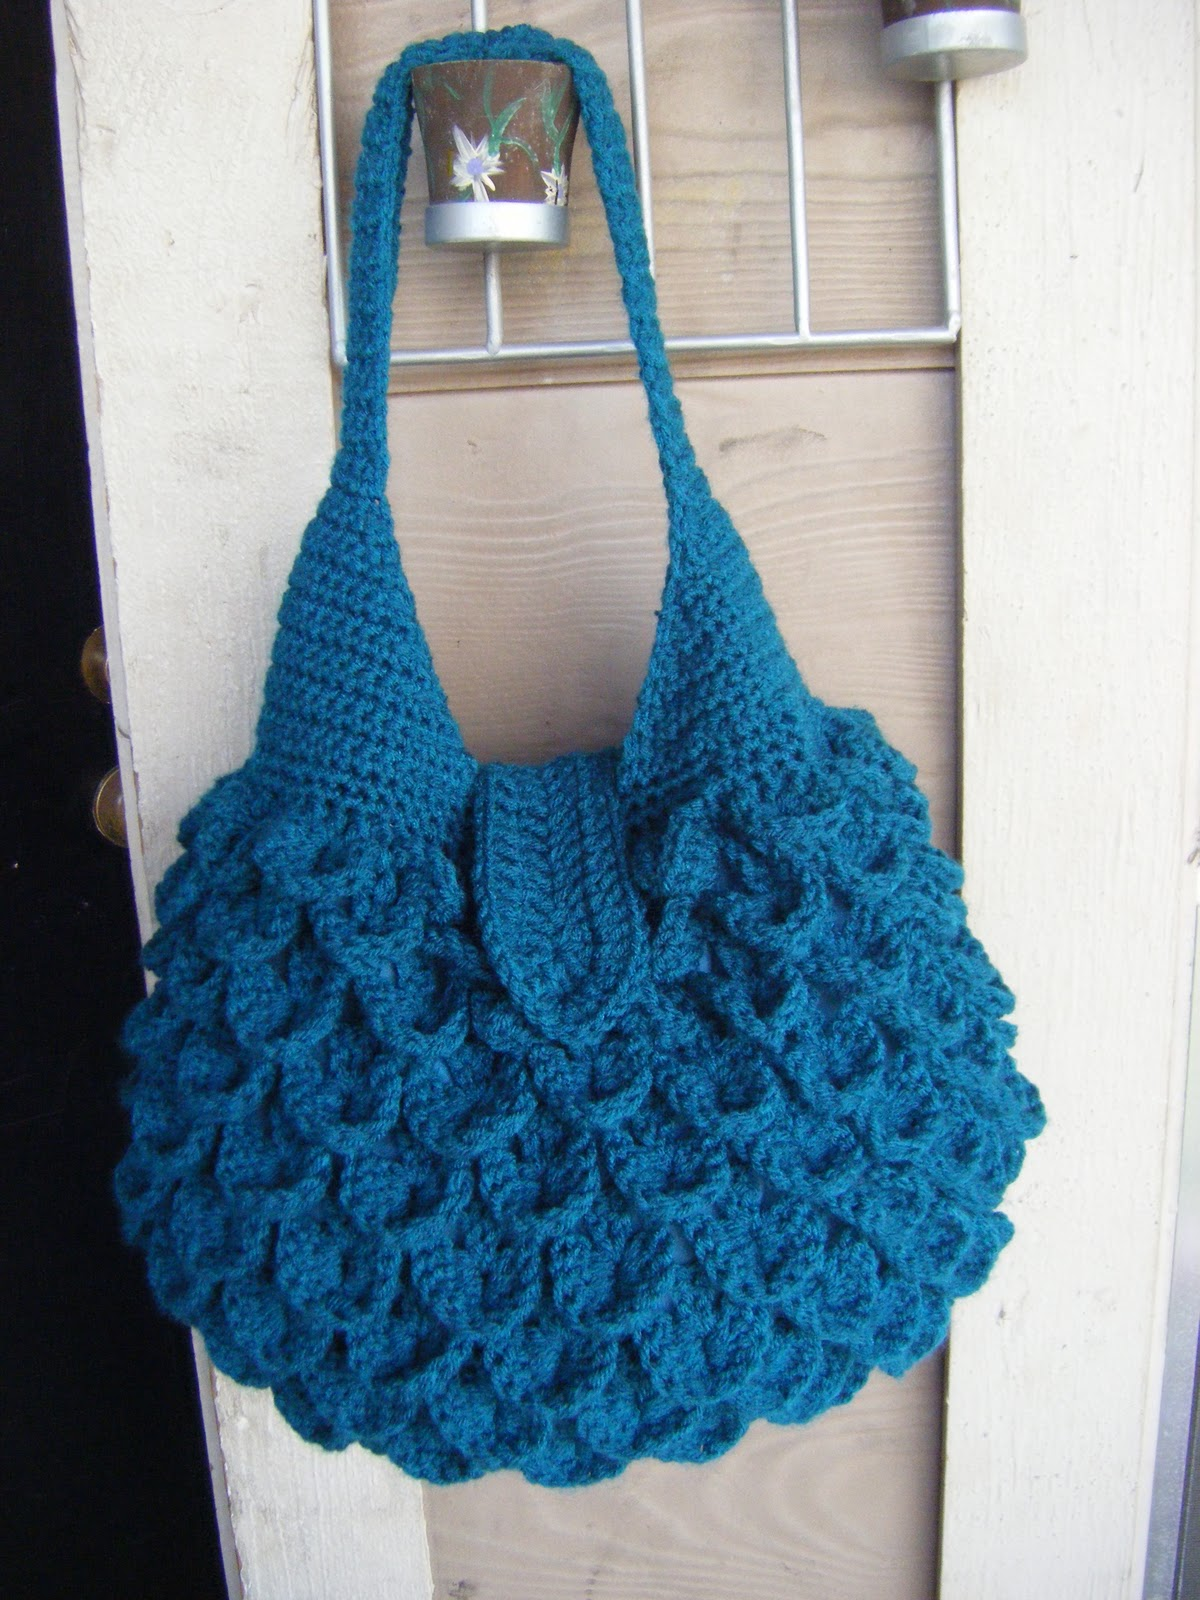 Free Crochet Bag : Best Patterns: Crocodile Crochet Bag PATTERN